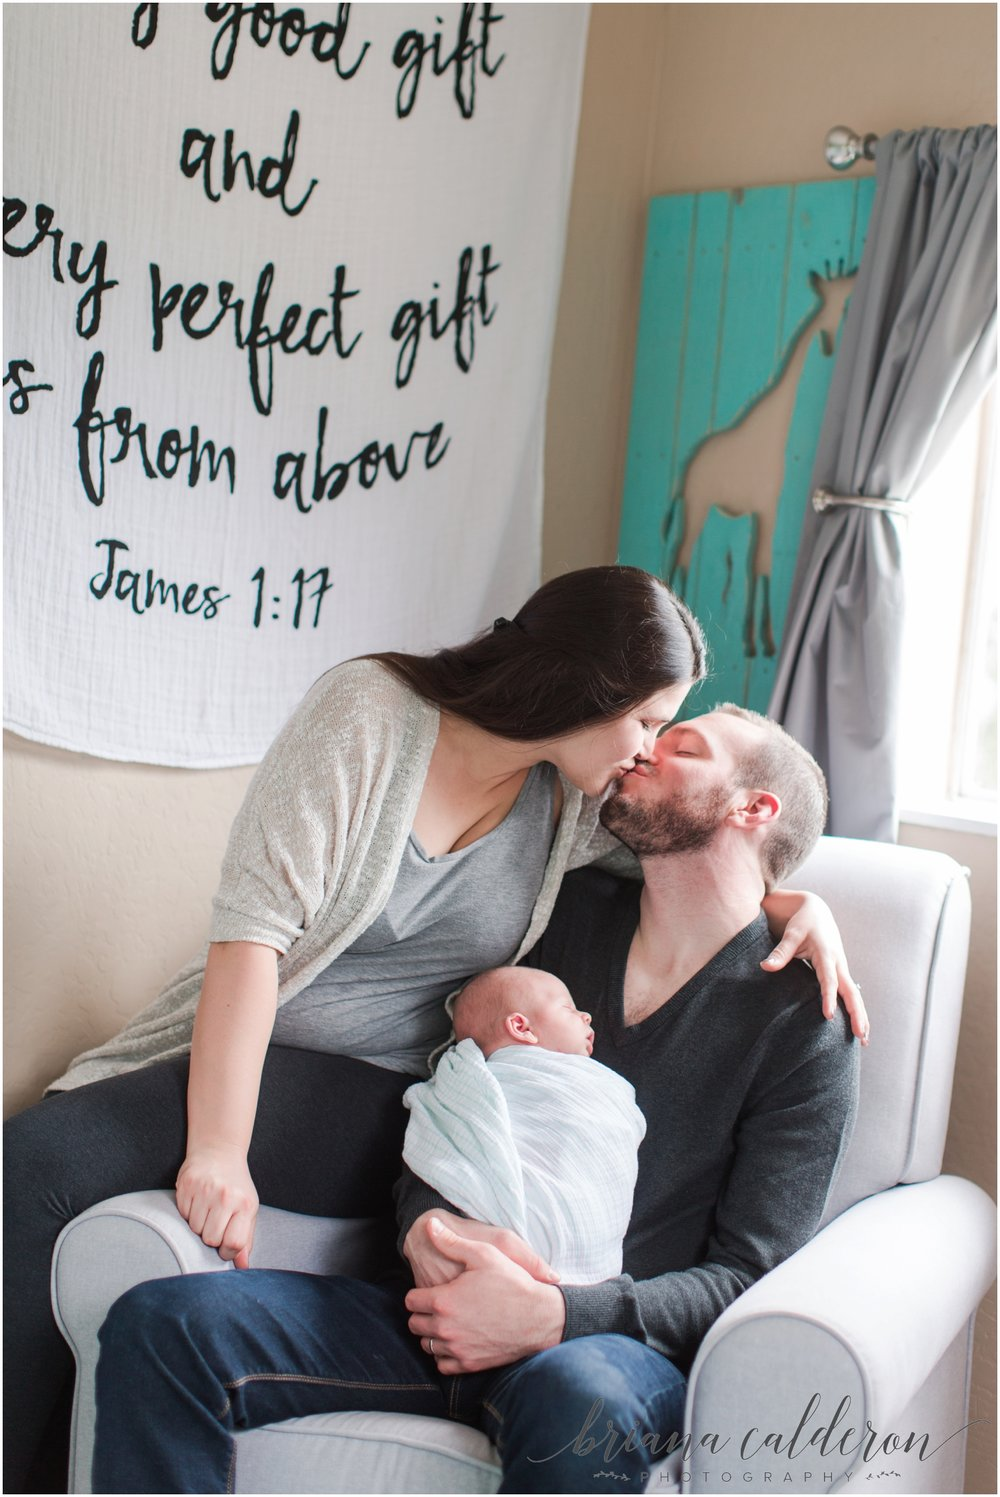 Lifestyle newborn photos by Briana Calderon Photography_0995.jpg